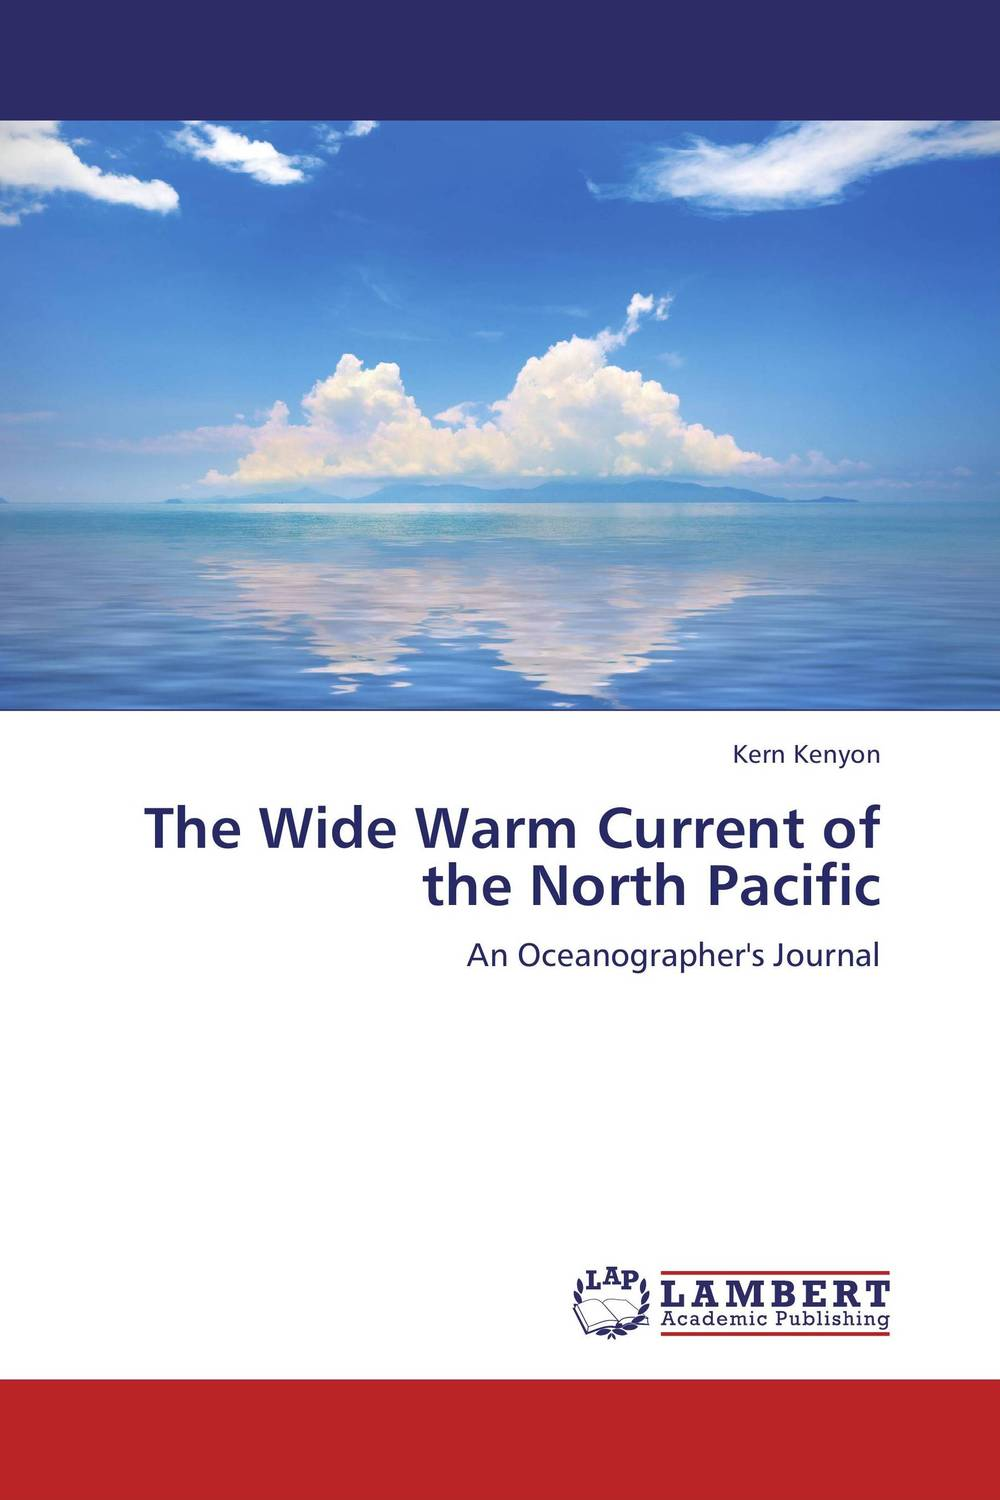 The Wide Warm Current of the North Pacific latitudes